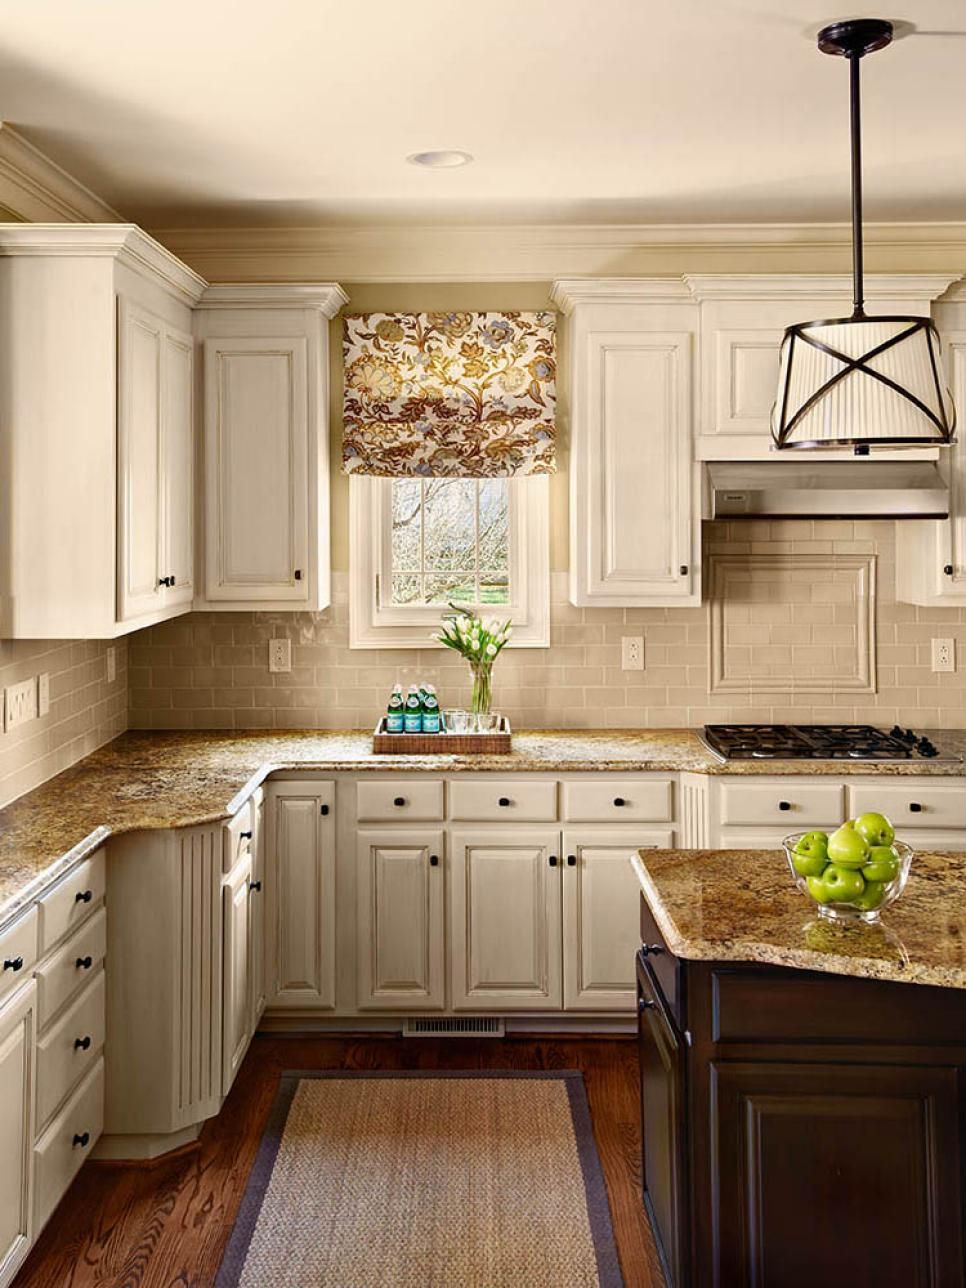 Browse Pictures Of Gorgeous Kitchens For Cabinet Ideas From Hgtv Com